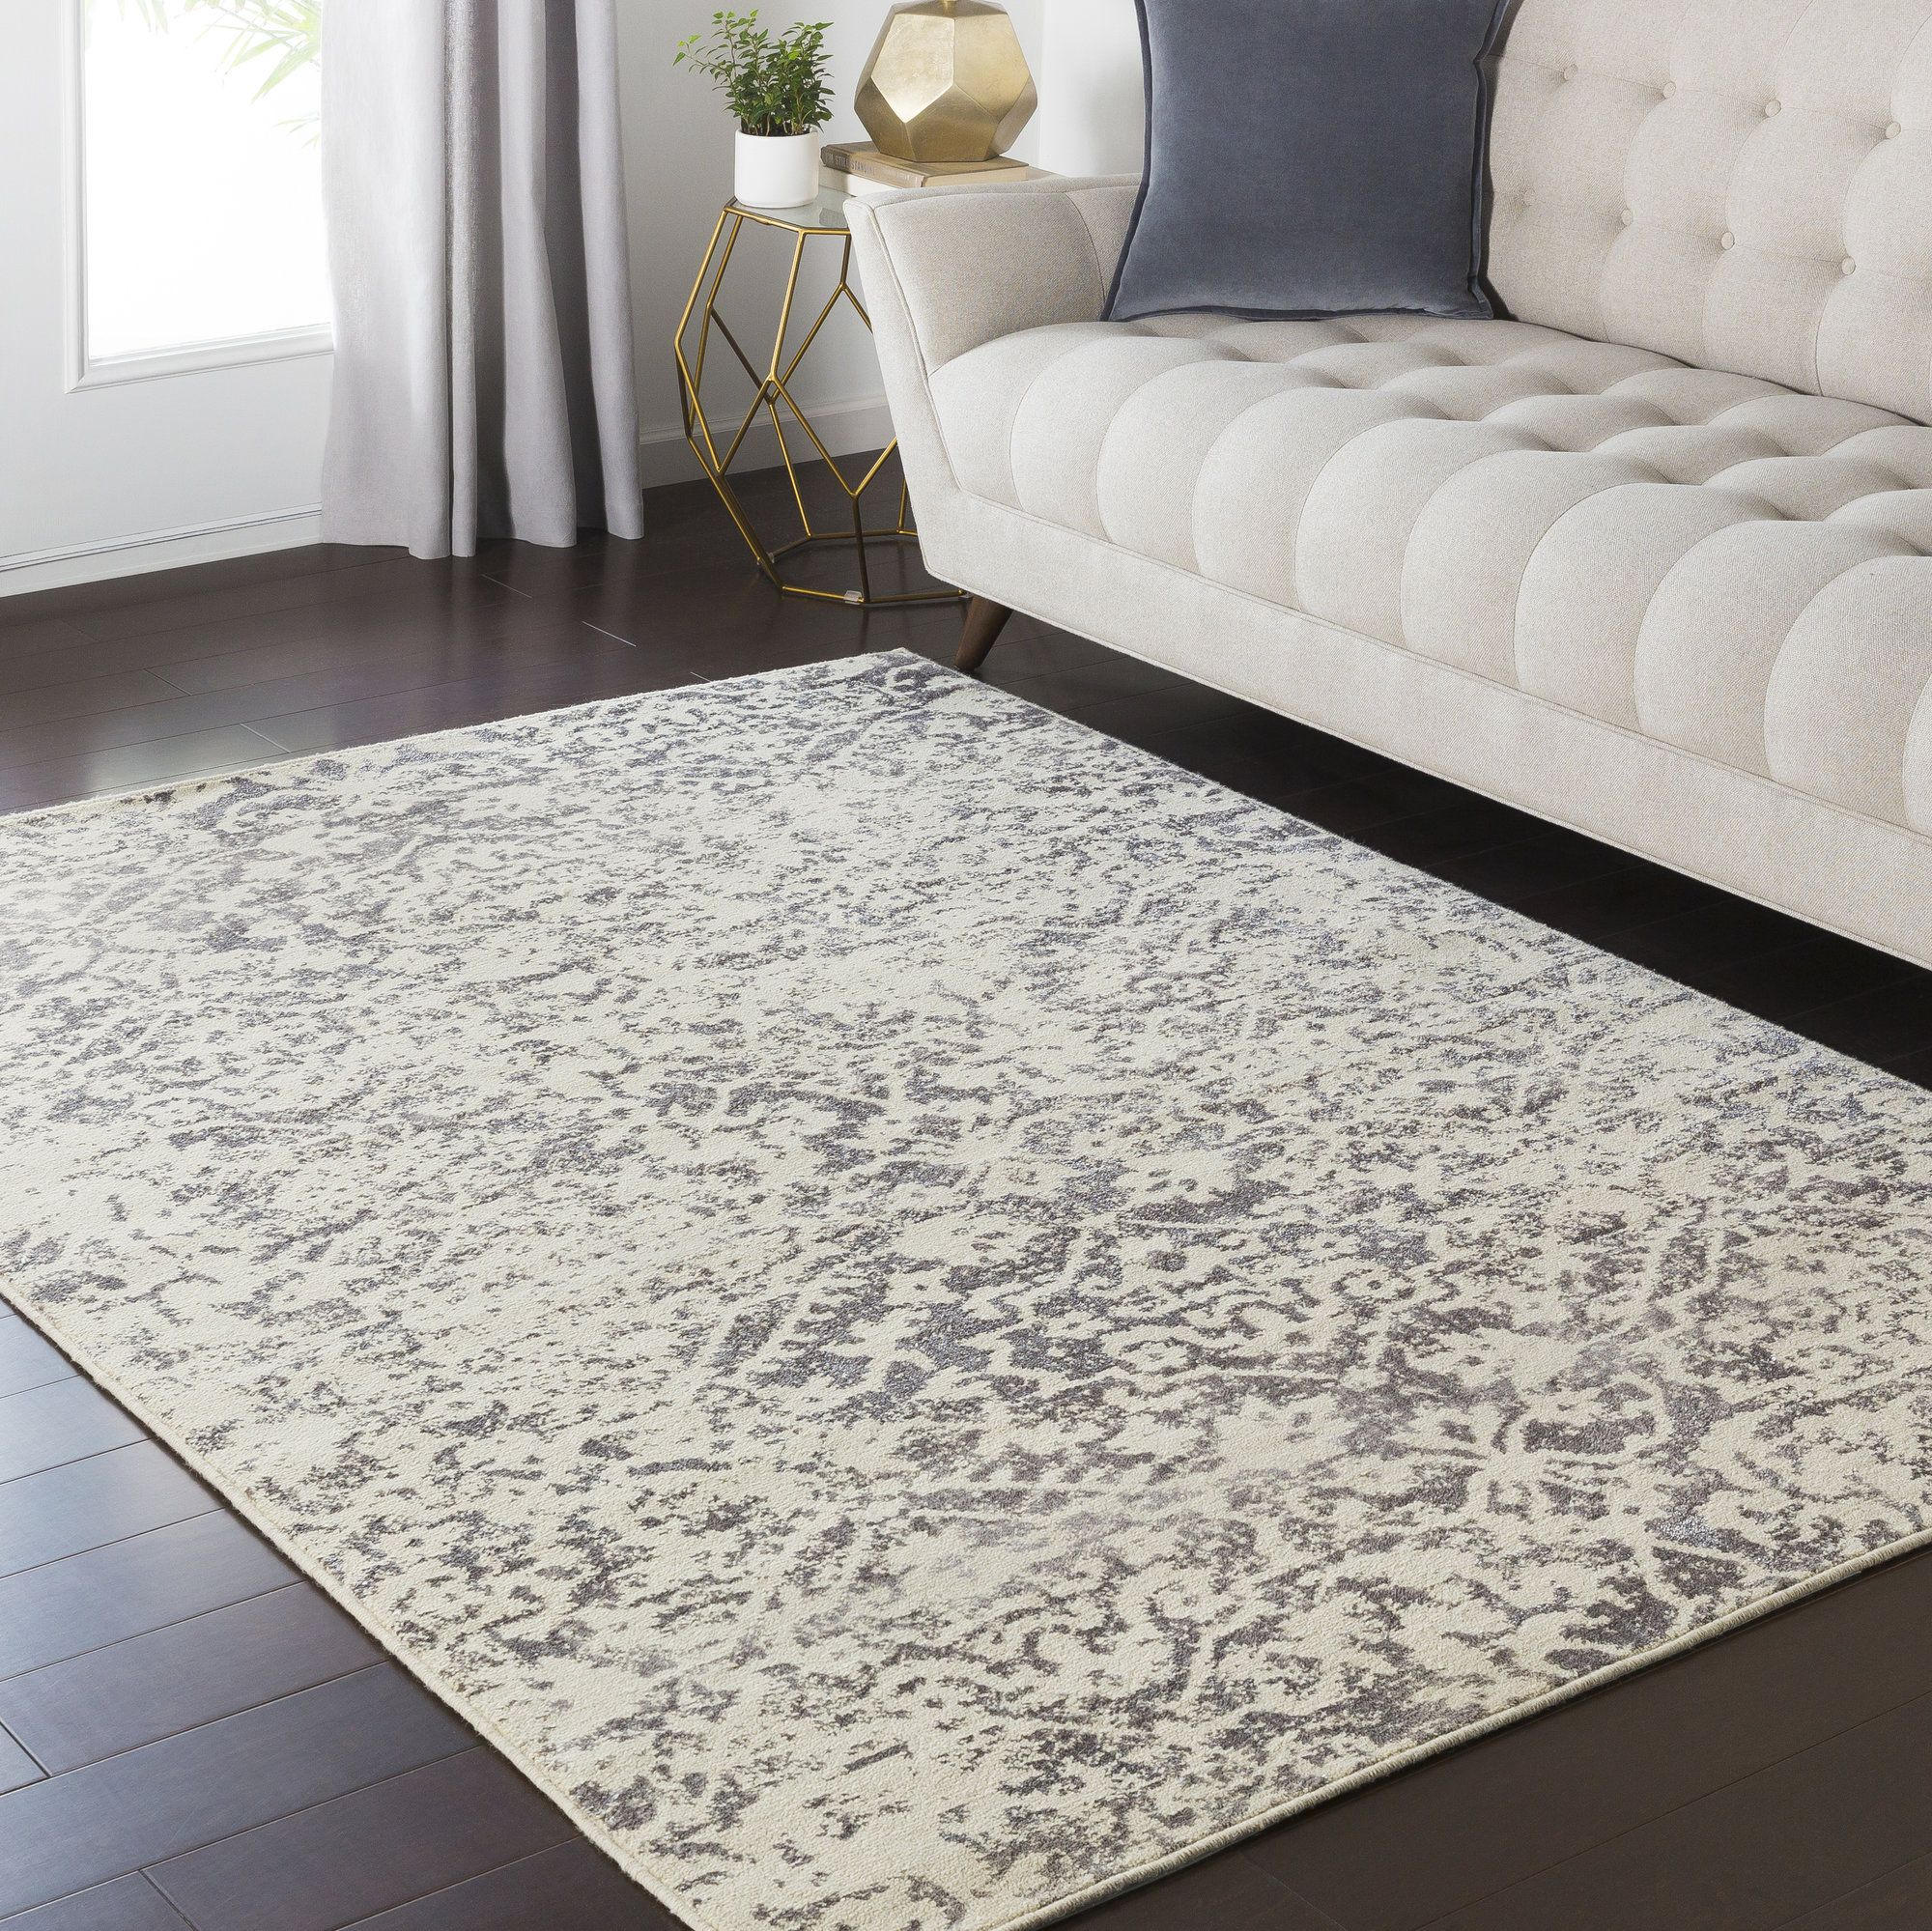 Quincy Beige Gray Area Rug Products Pinterest